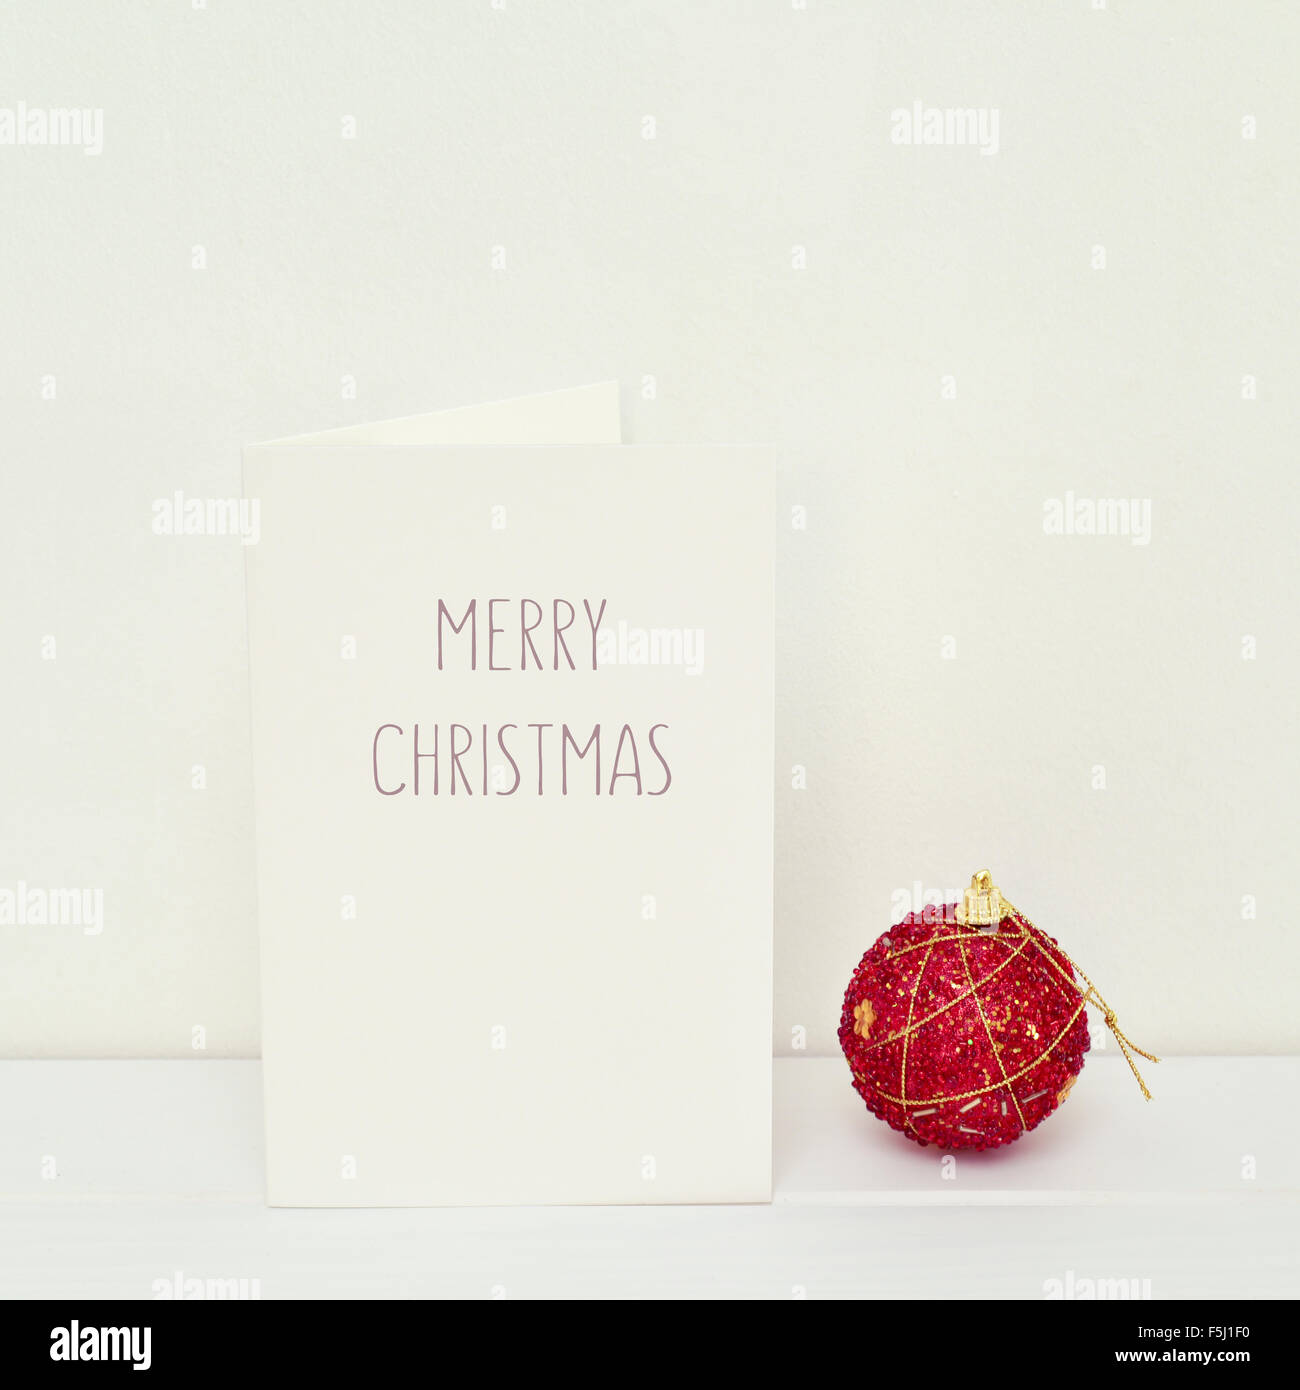 a red Christmas ball and a white greeting card with the text merry christmas in a white scene - Stock Image